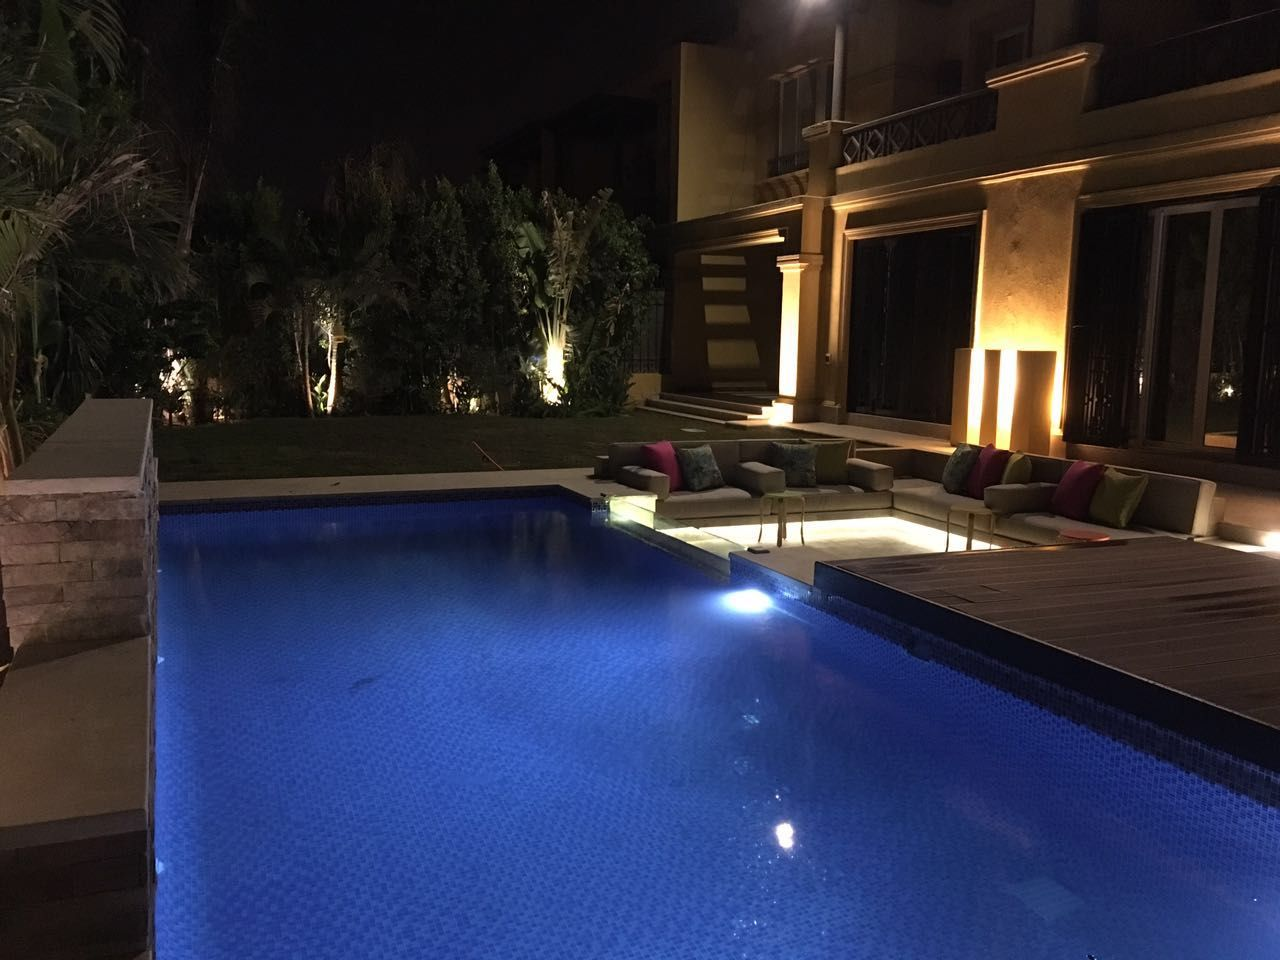 Pin by Shafik Saad on Pools in Egypt Outdoor decor, Pool